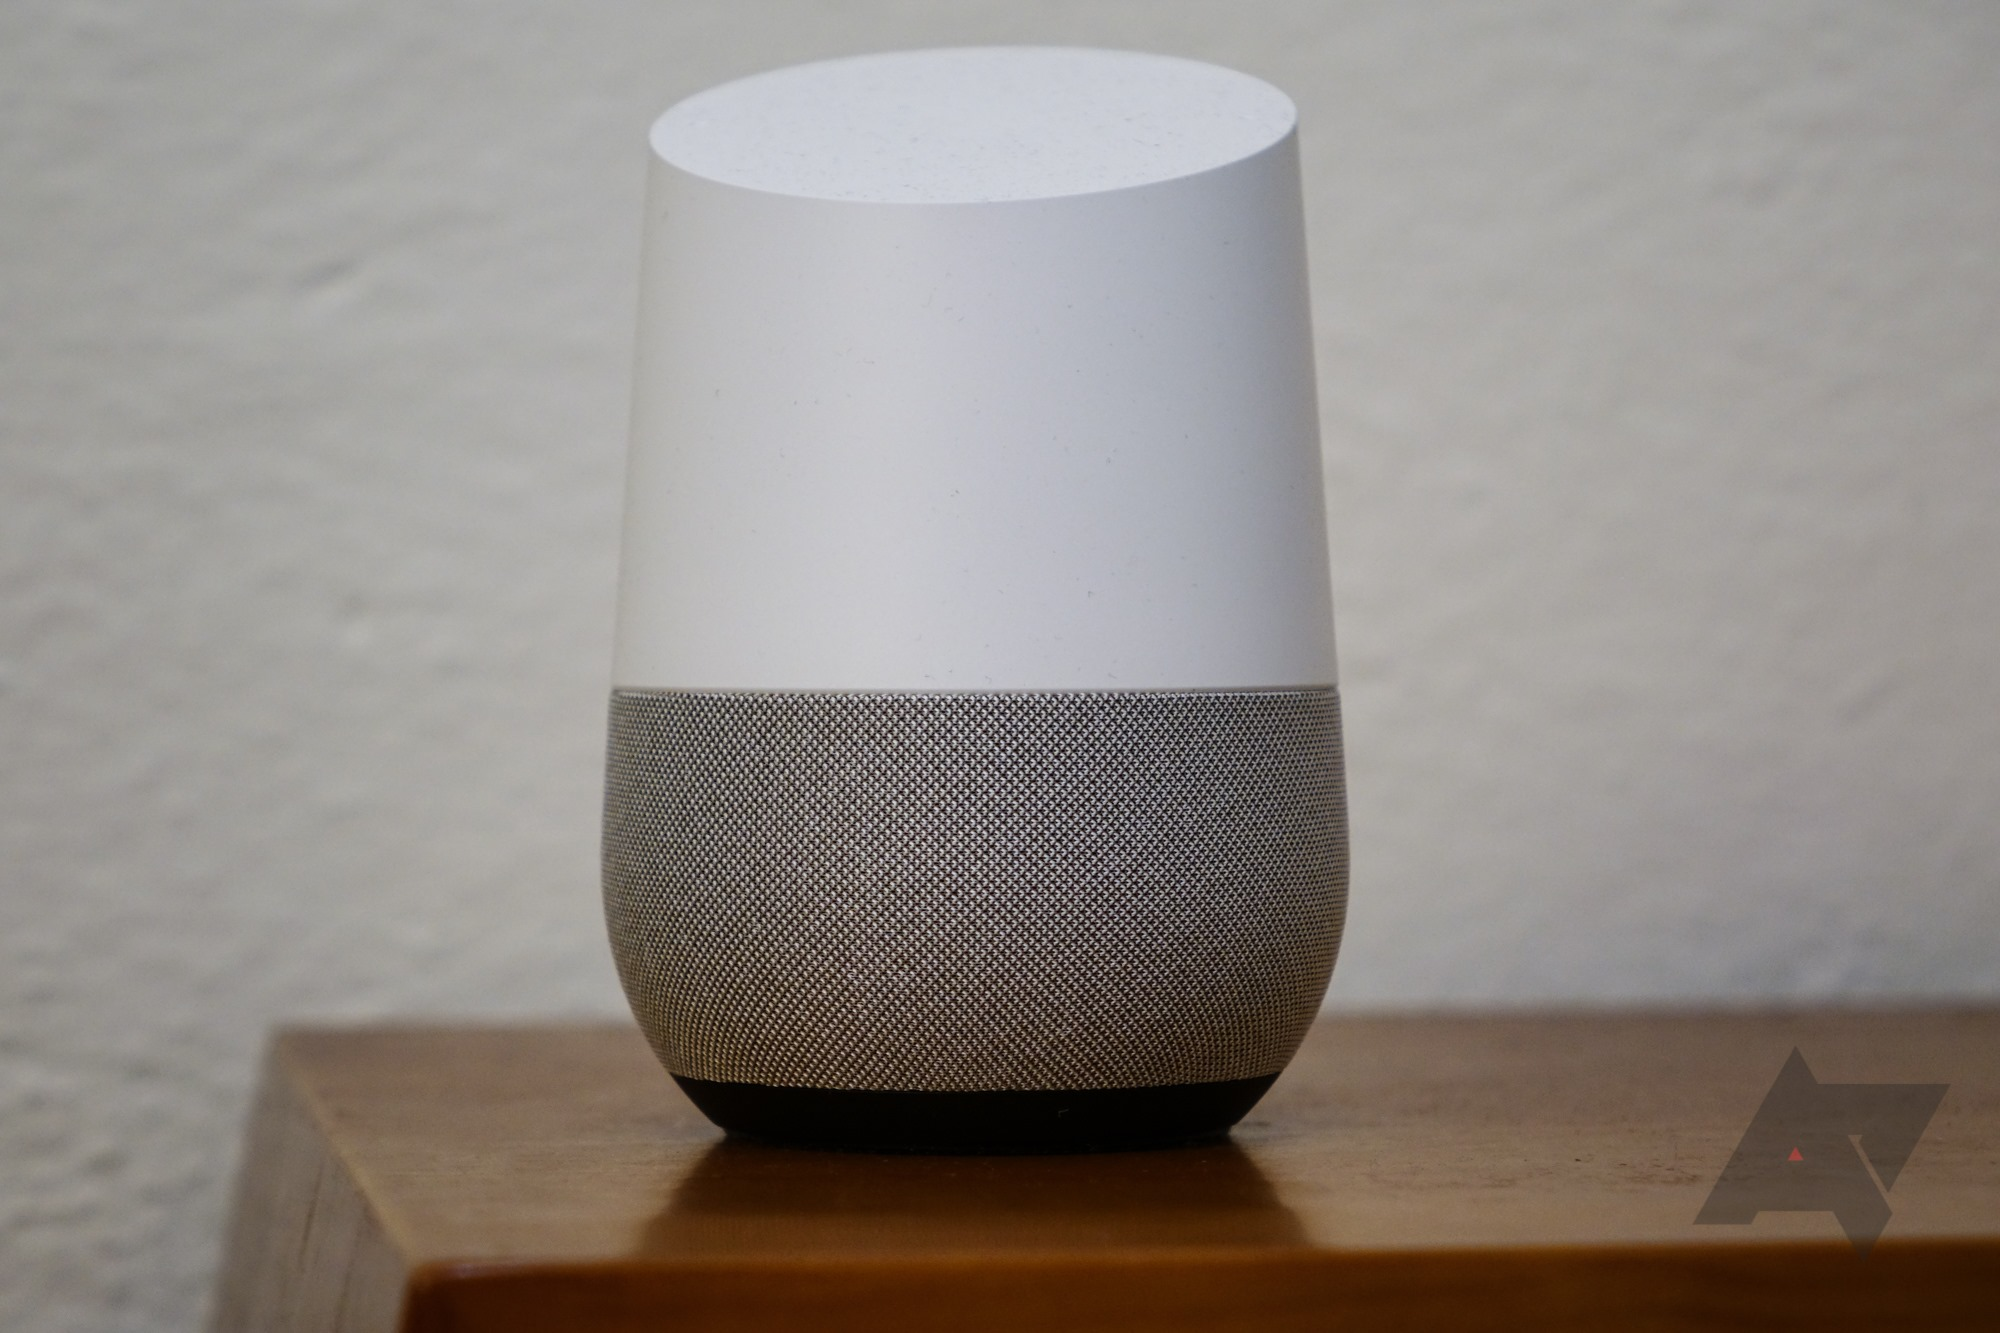 10 stupidly simple things I wish Google Home would do